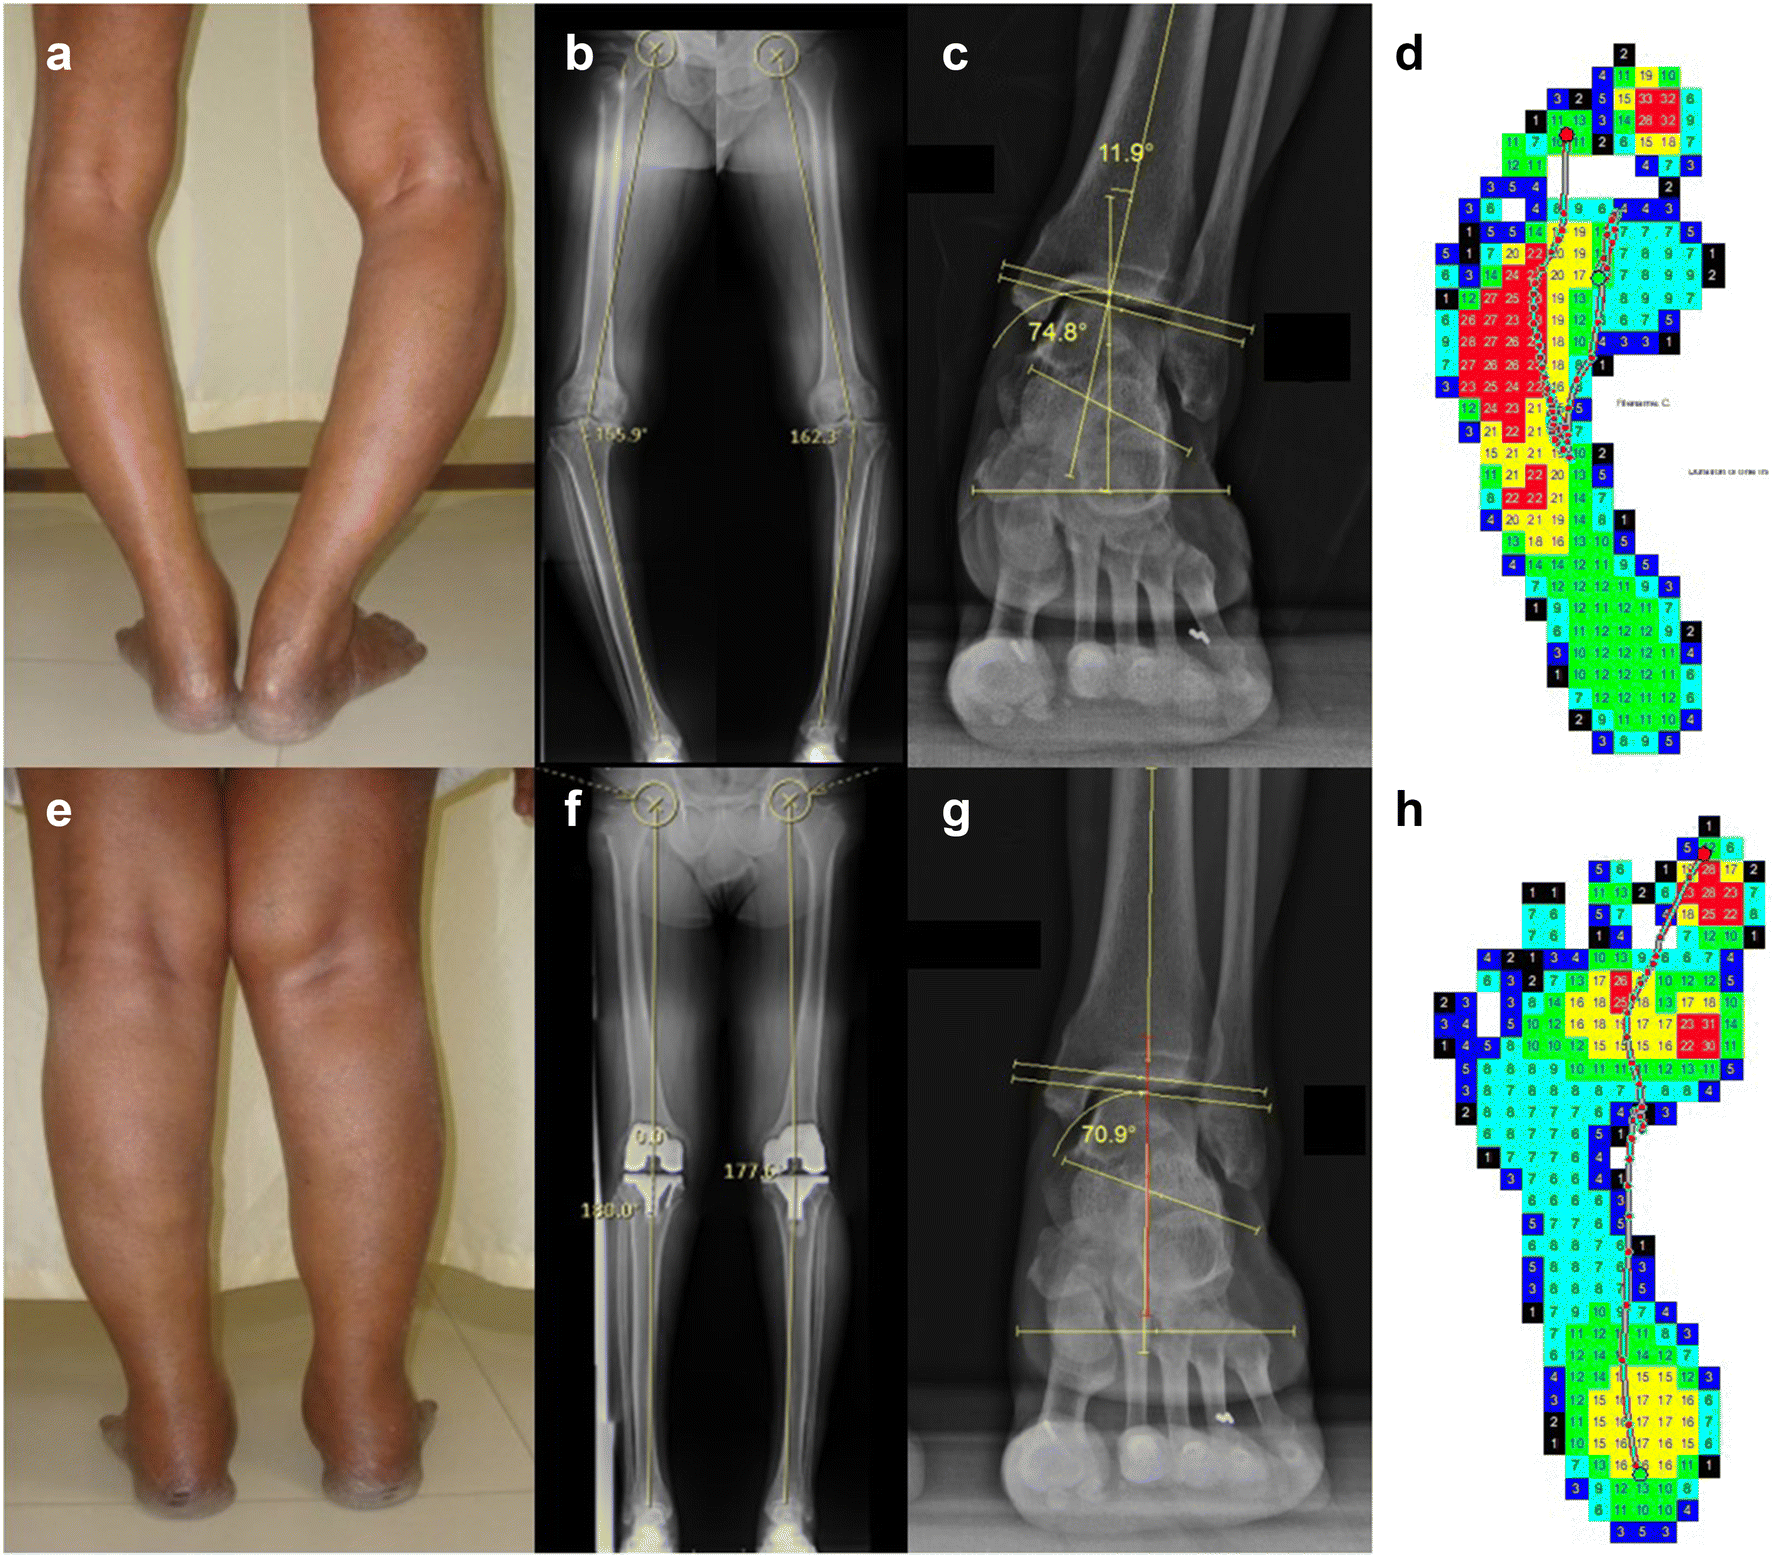 Foot loading pattern and hind foot alignment are corrected